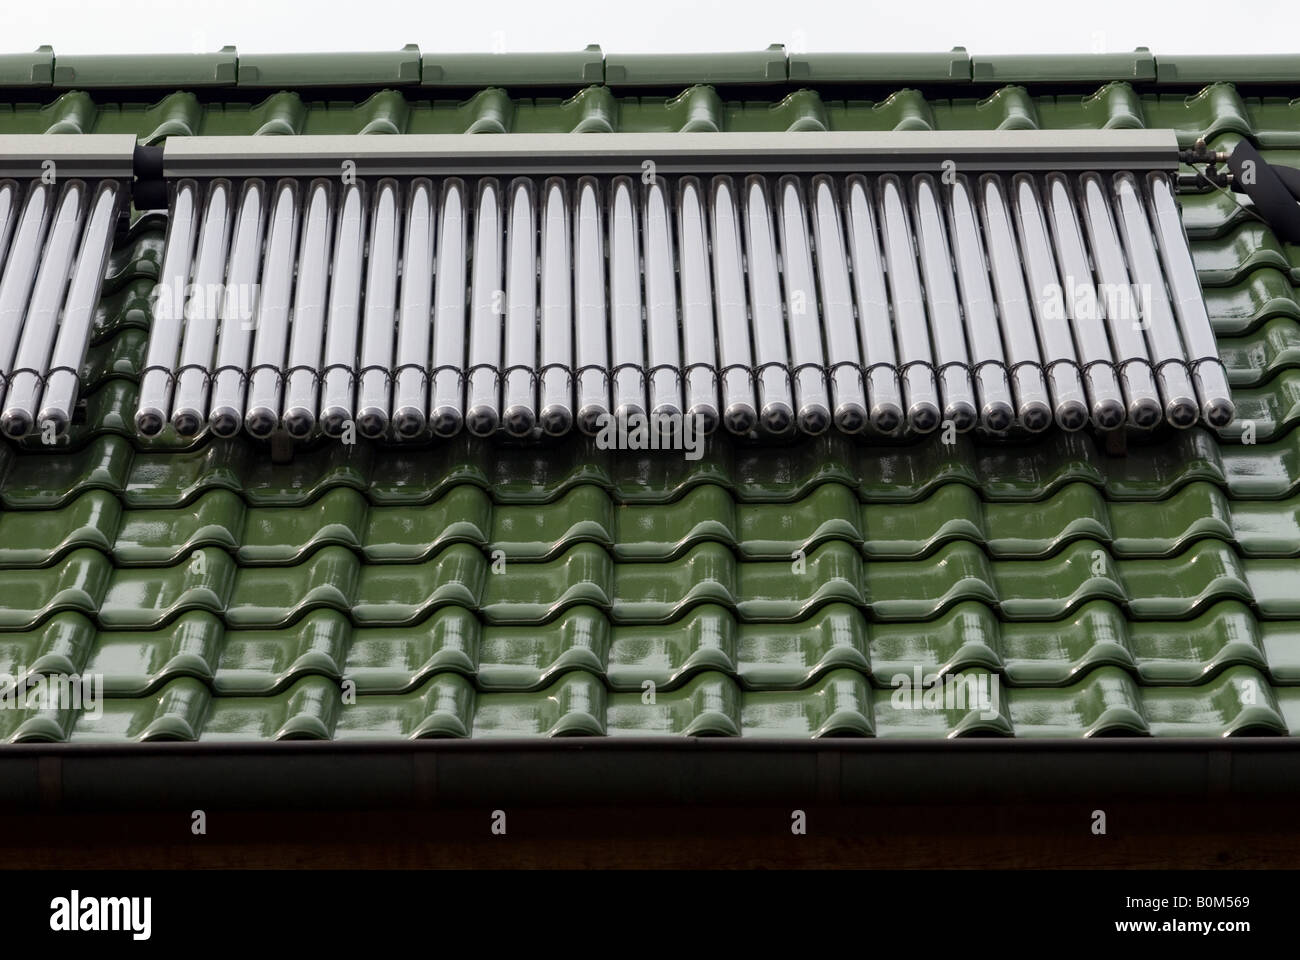 Solar Evacuated Tubes on the roof of a house in Horst near Werne, North Rhine Westphalia, Germany. - Stock Image